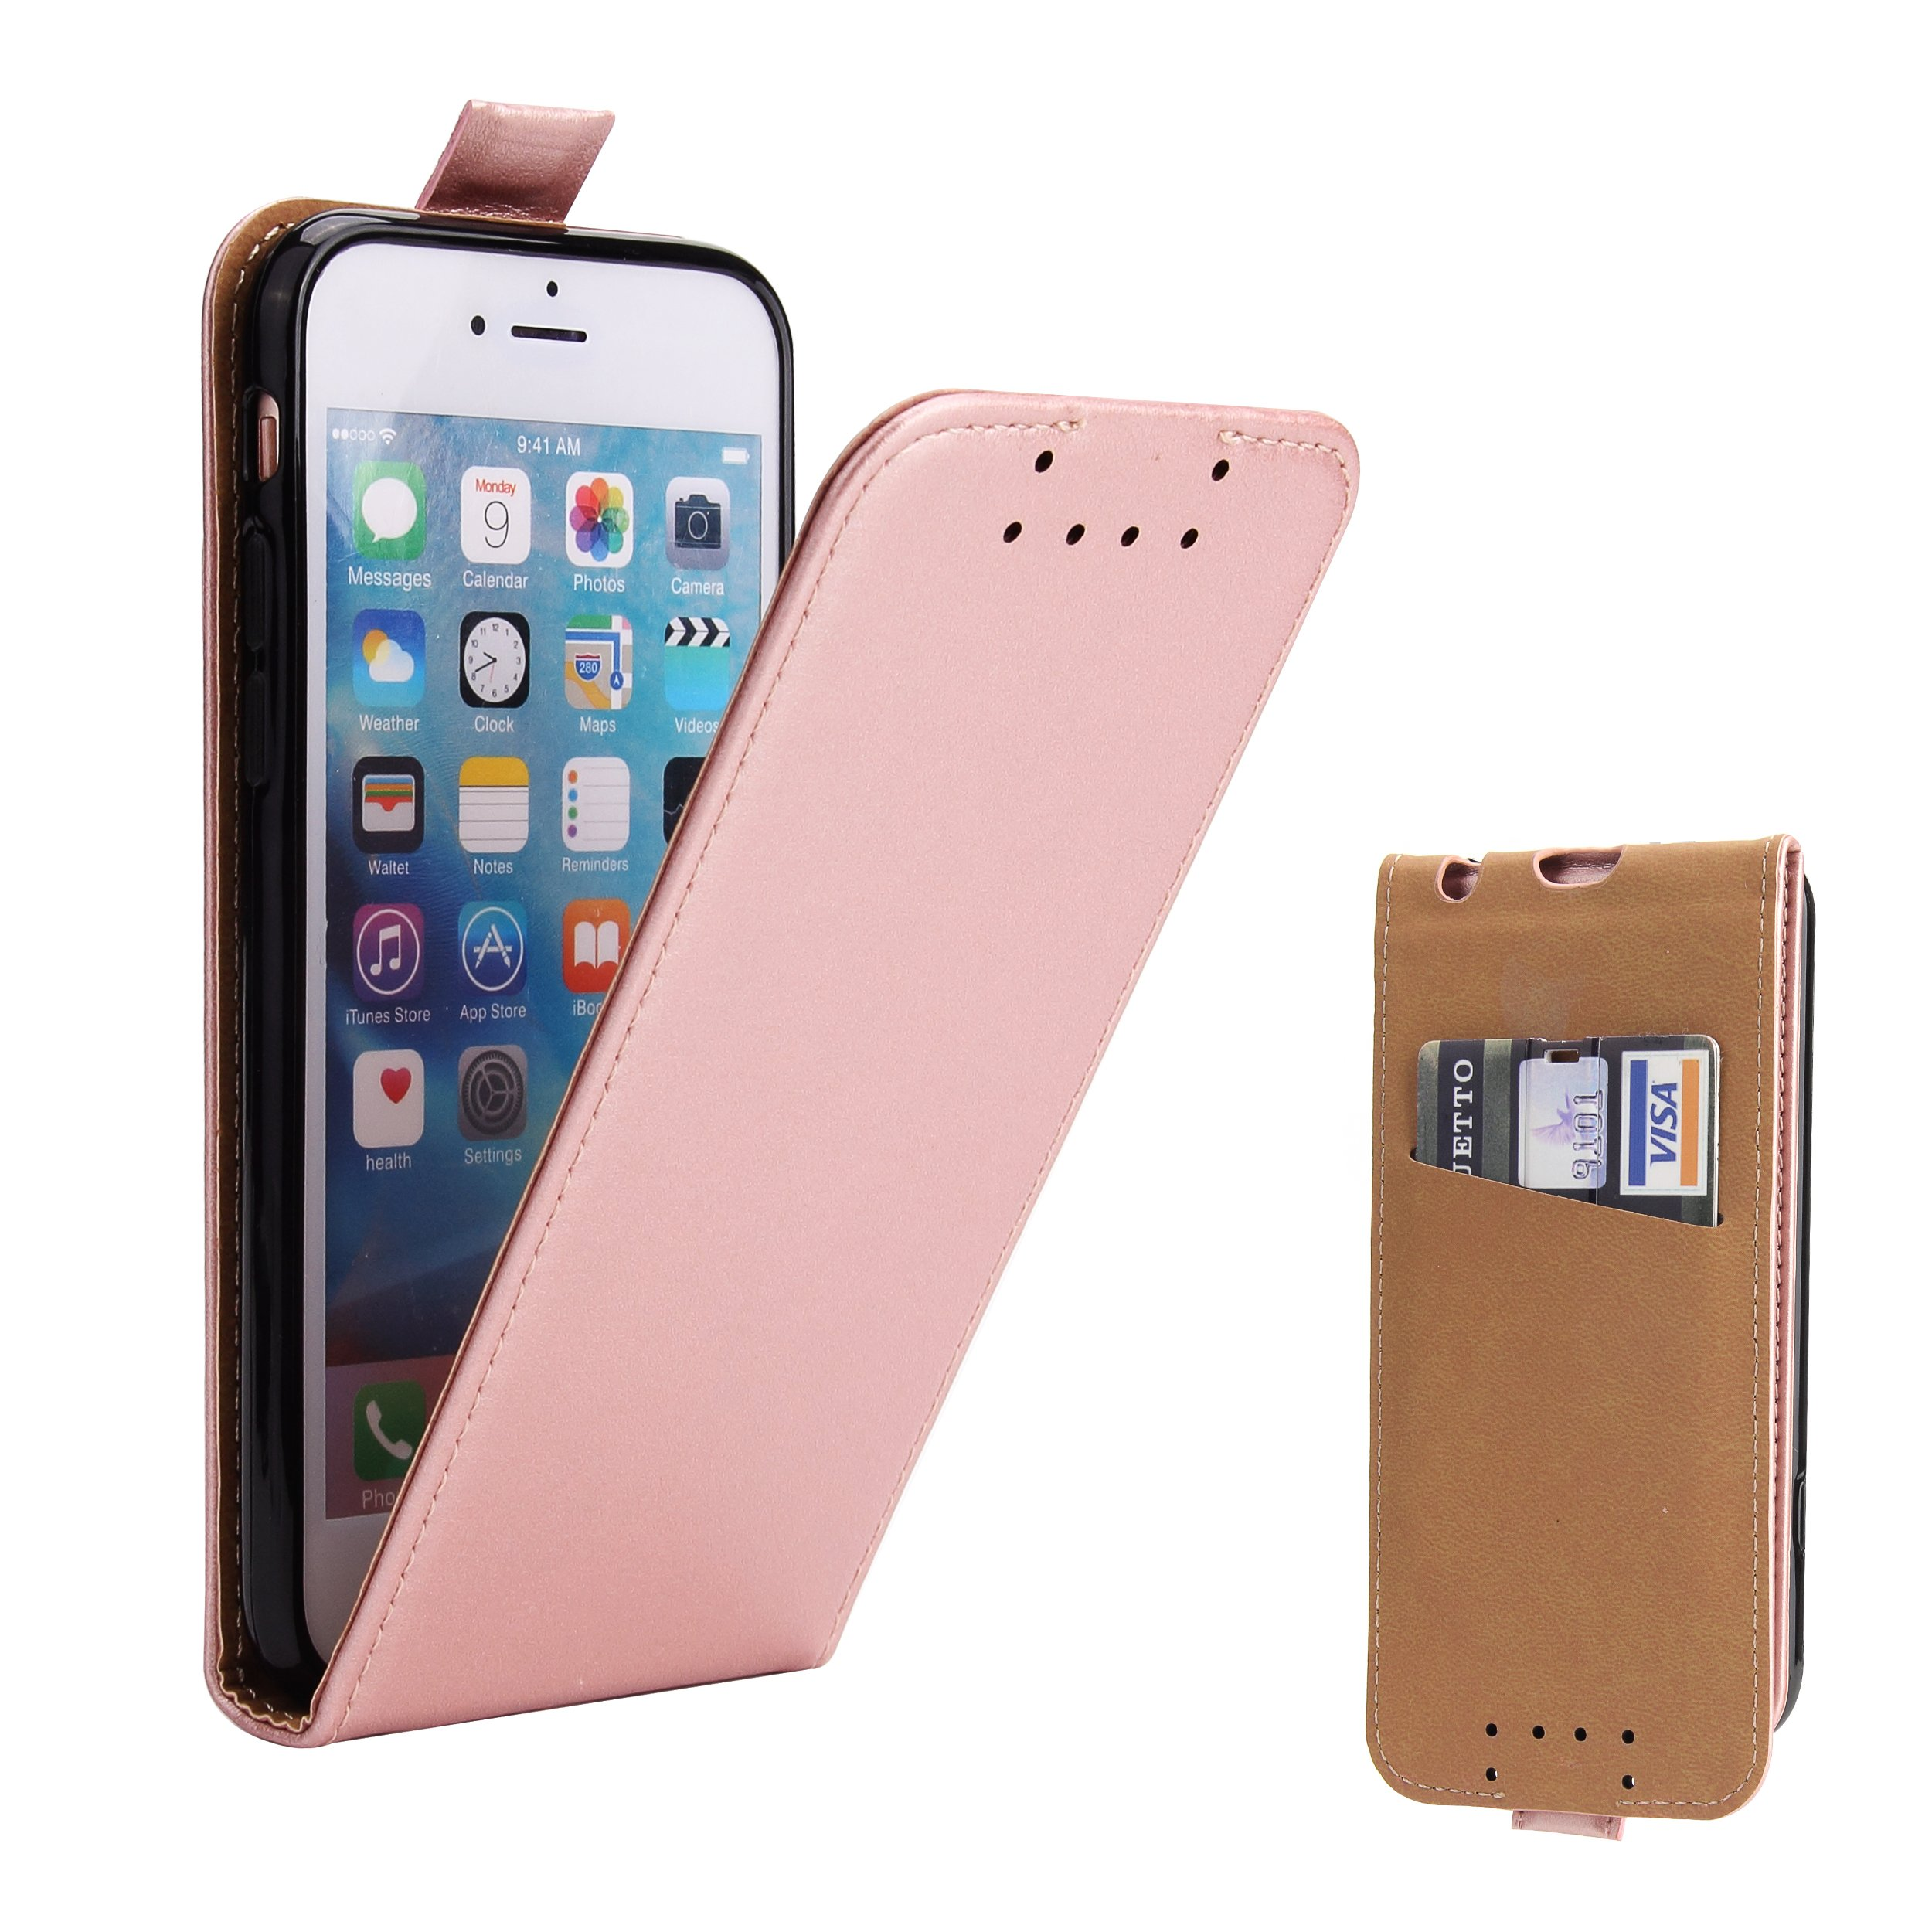 iPhone 6S Case, iPhone 6 Case, Supad Leather Flip Case [Credit Card ID Slot] Cover for iPhone 6S / 6 with Magnetic Closure (Rose Gold)